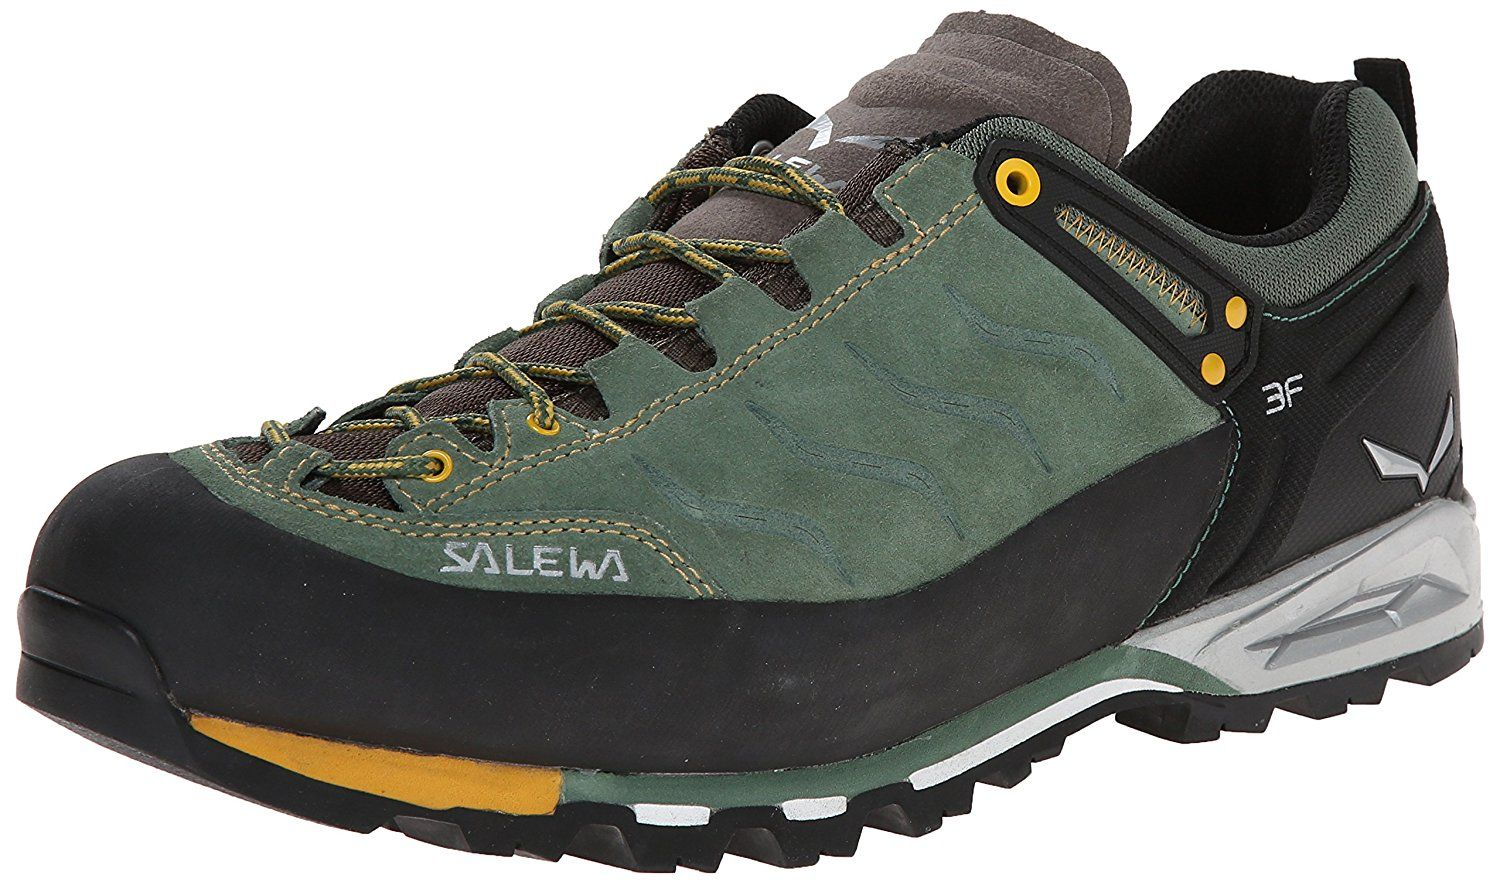 Salewa Men S Ms Mtn Trainer Hiking Shoe Startling Review Available Here Hiking Shoes Hiking Shoes Mens Trekking Shoes Hiking Shoes